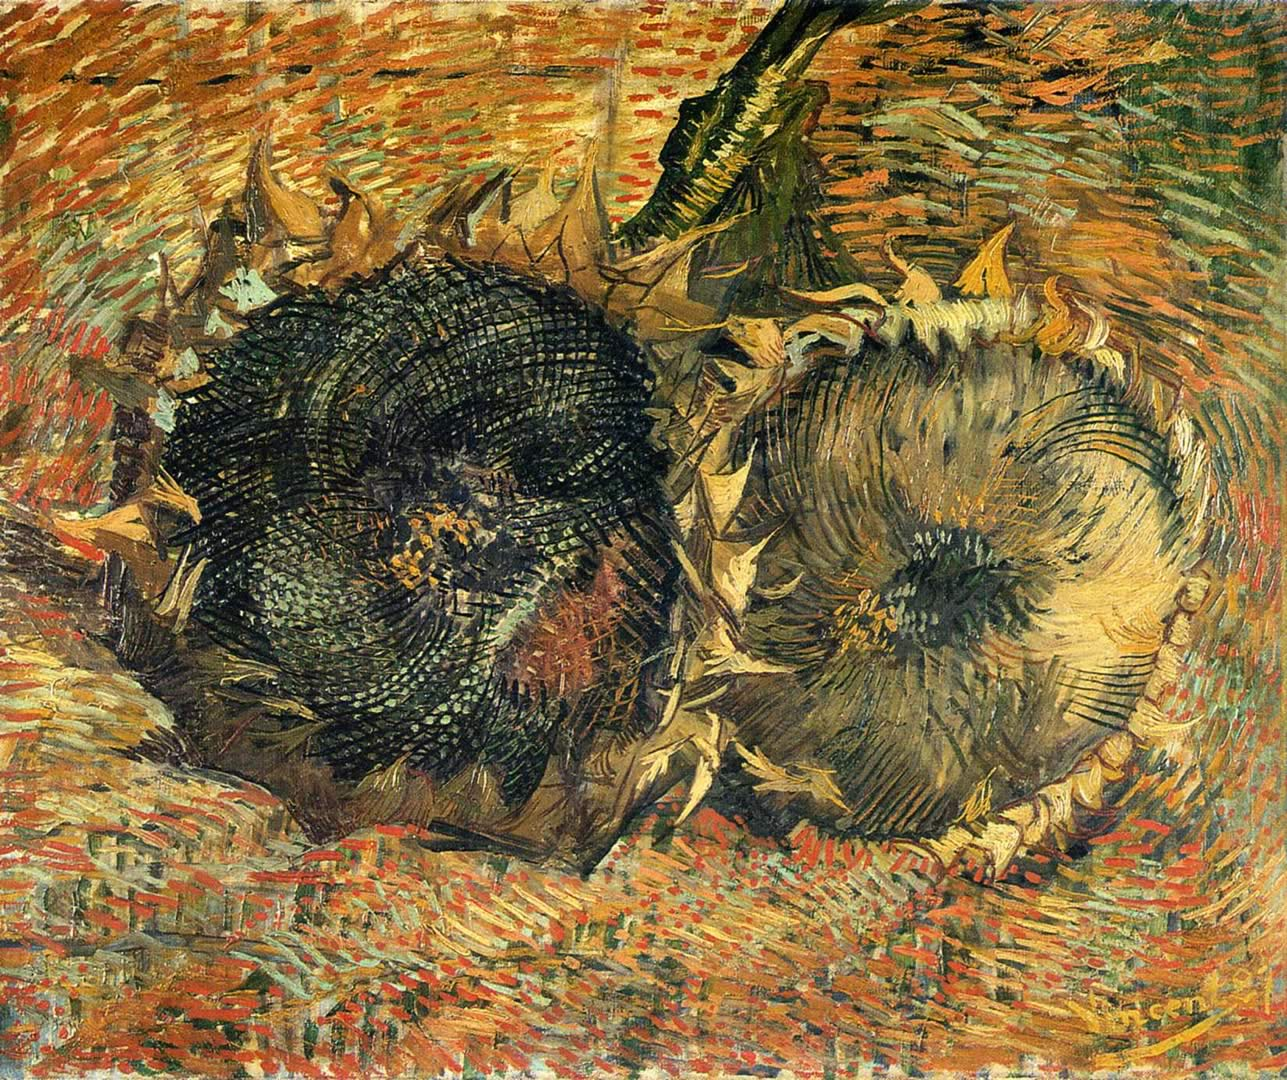 Vincent Van Gogh Paintings Sunflowers Still Life With Two Sunflowers Vincent Van Gogh